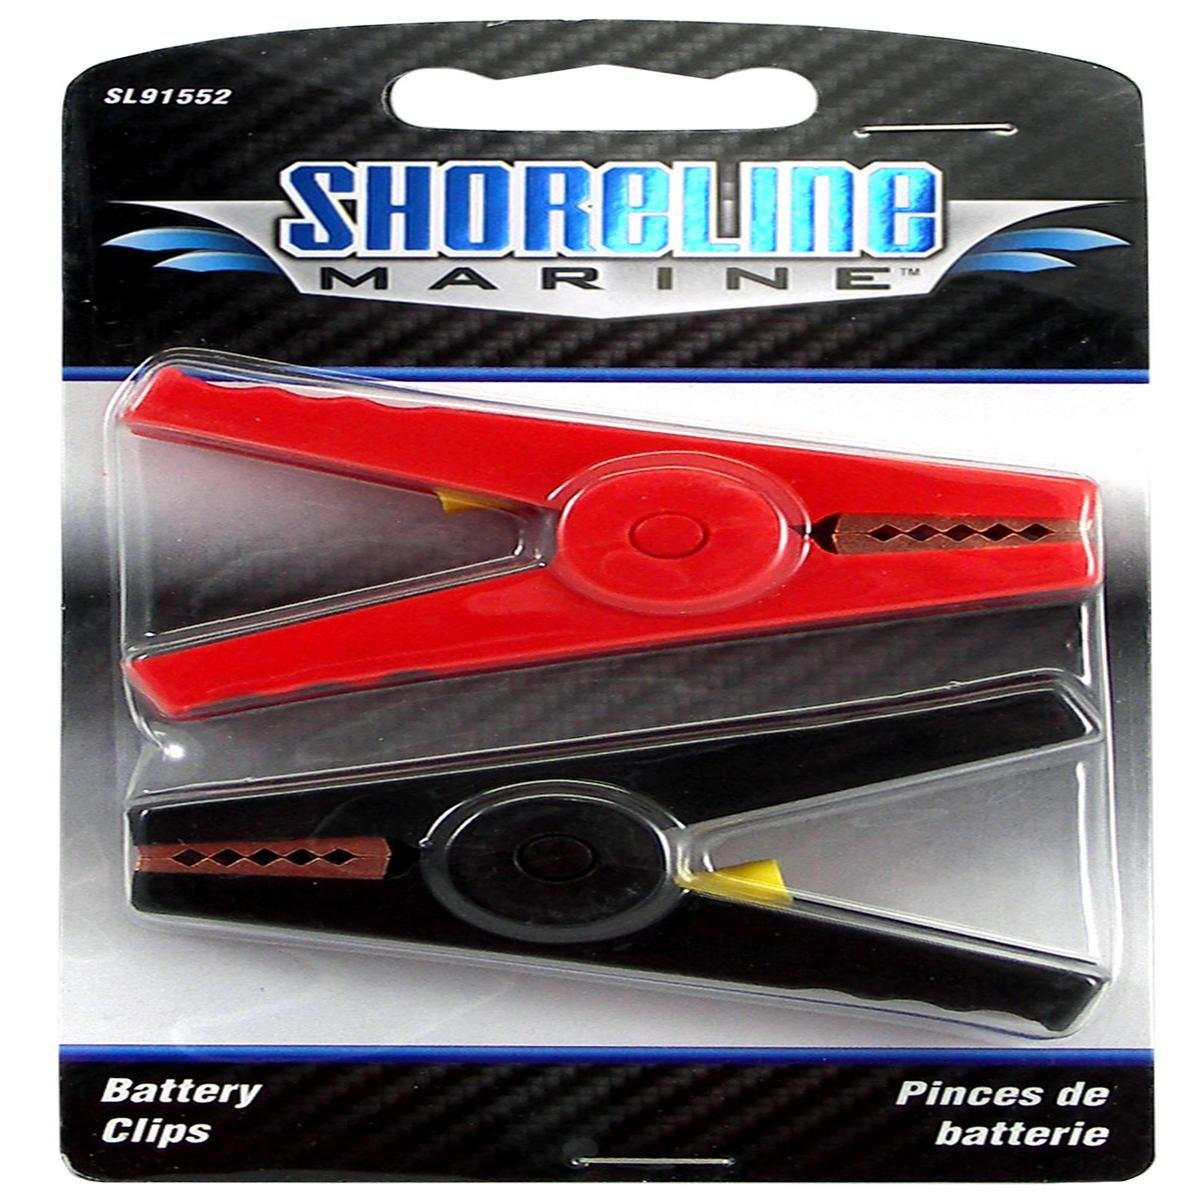 Shoreline Marine Heavy Duty Battery Clips South Bend Sporting Goods SL91552